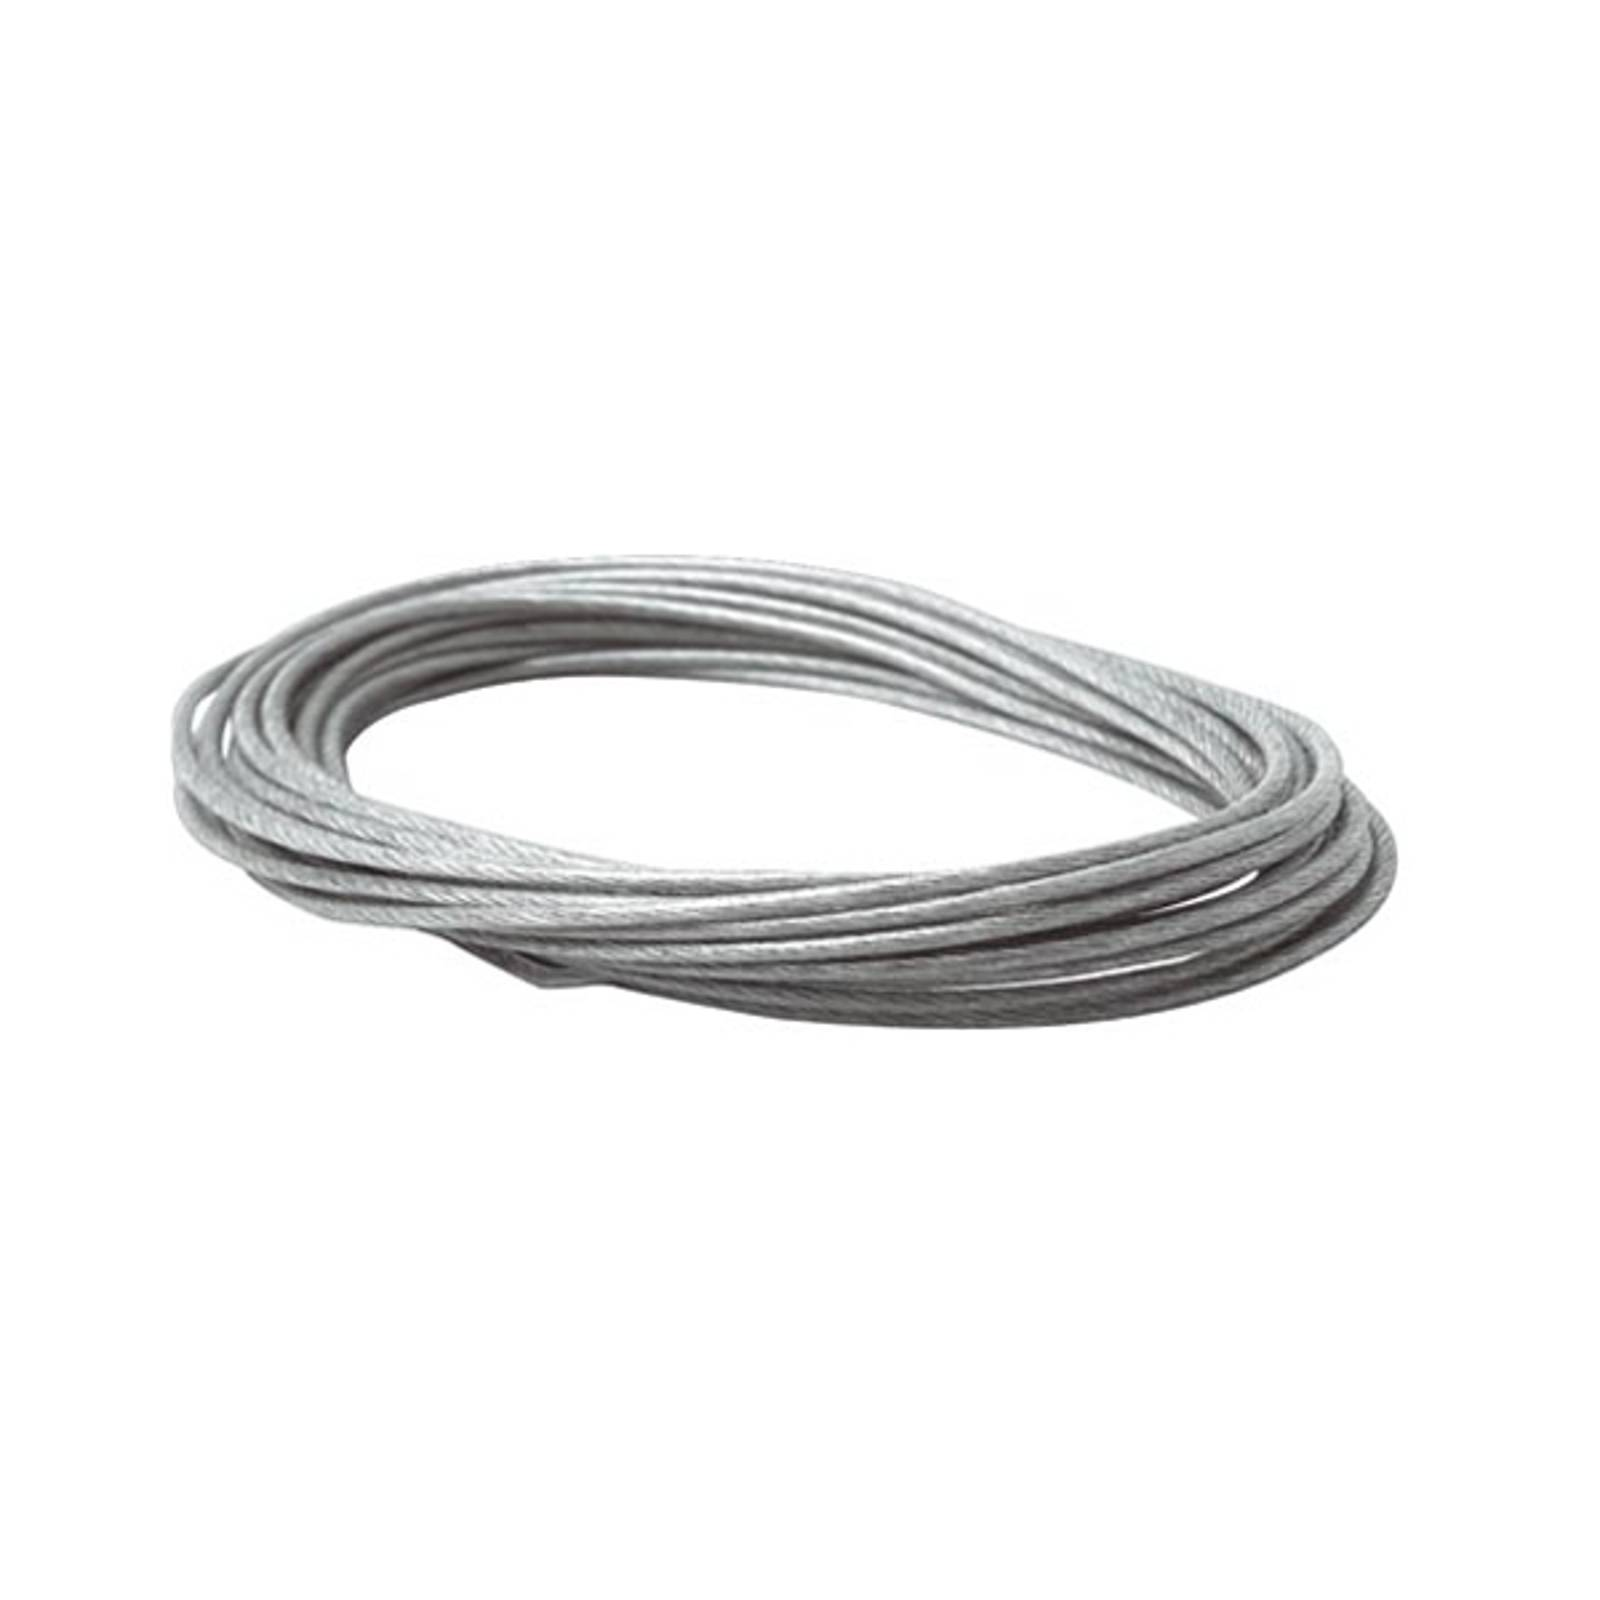 Safety tensioning cable 4 mm² 12m from Paulmann